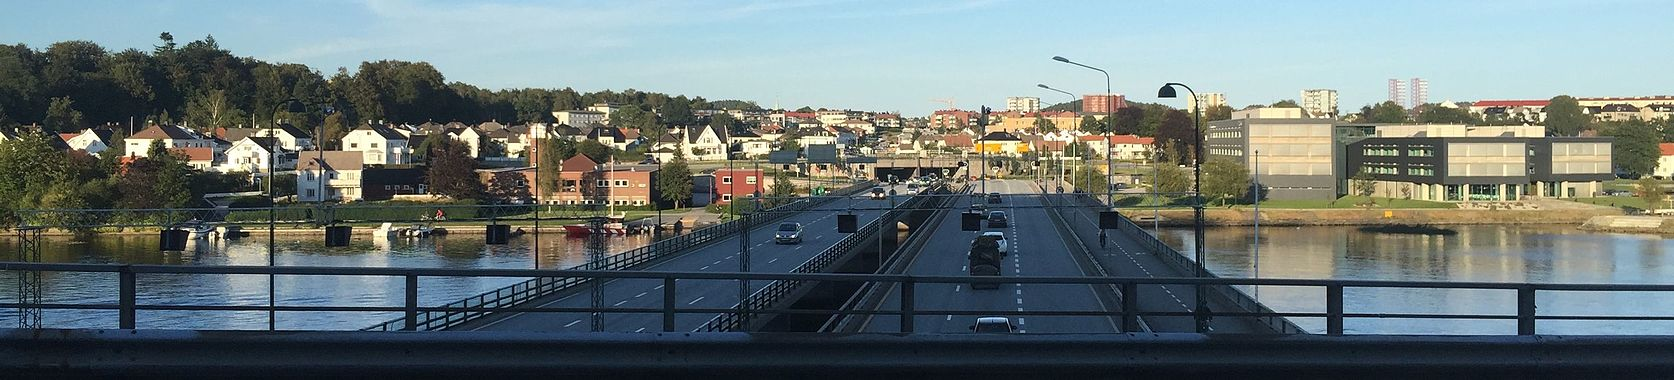 Oddernesbrua from Kvadraturen to Lund, with Gimle to the left and Kjoita park to the left. The Otra river runs between and the bridge is a part of E18 Lundsiden1.jpg